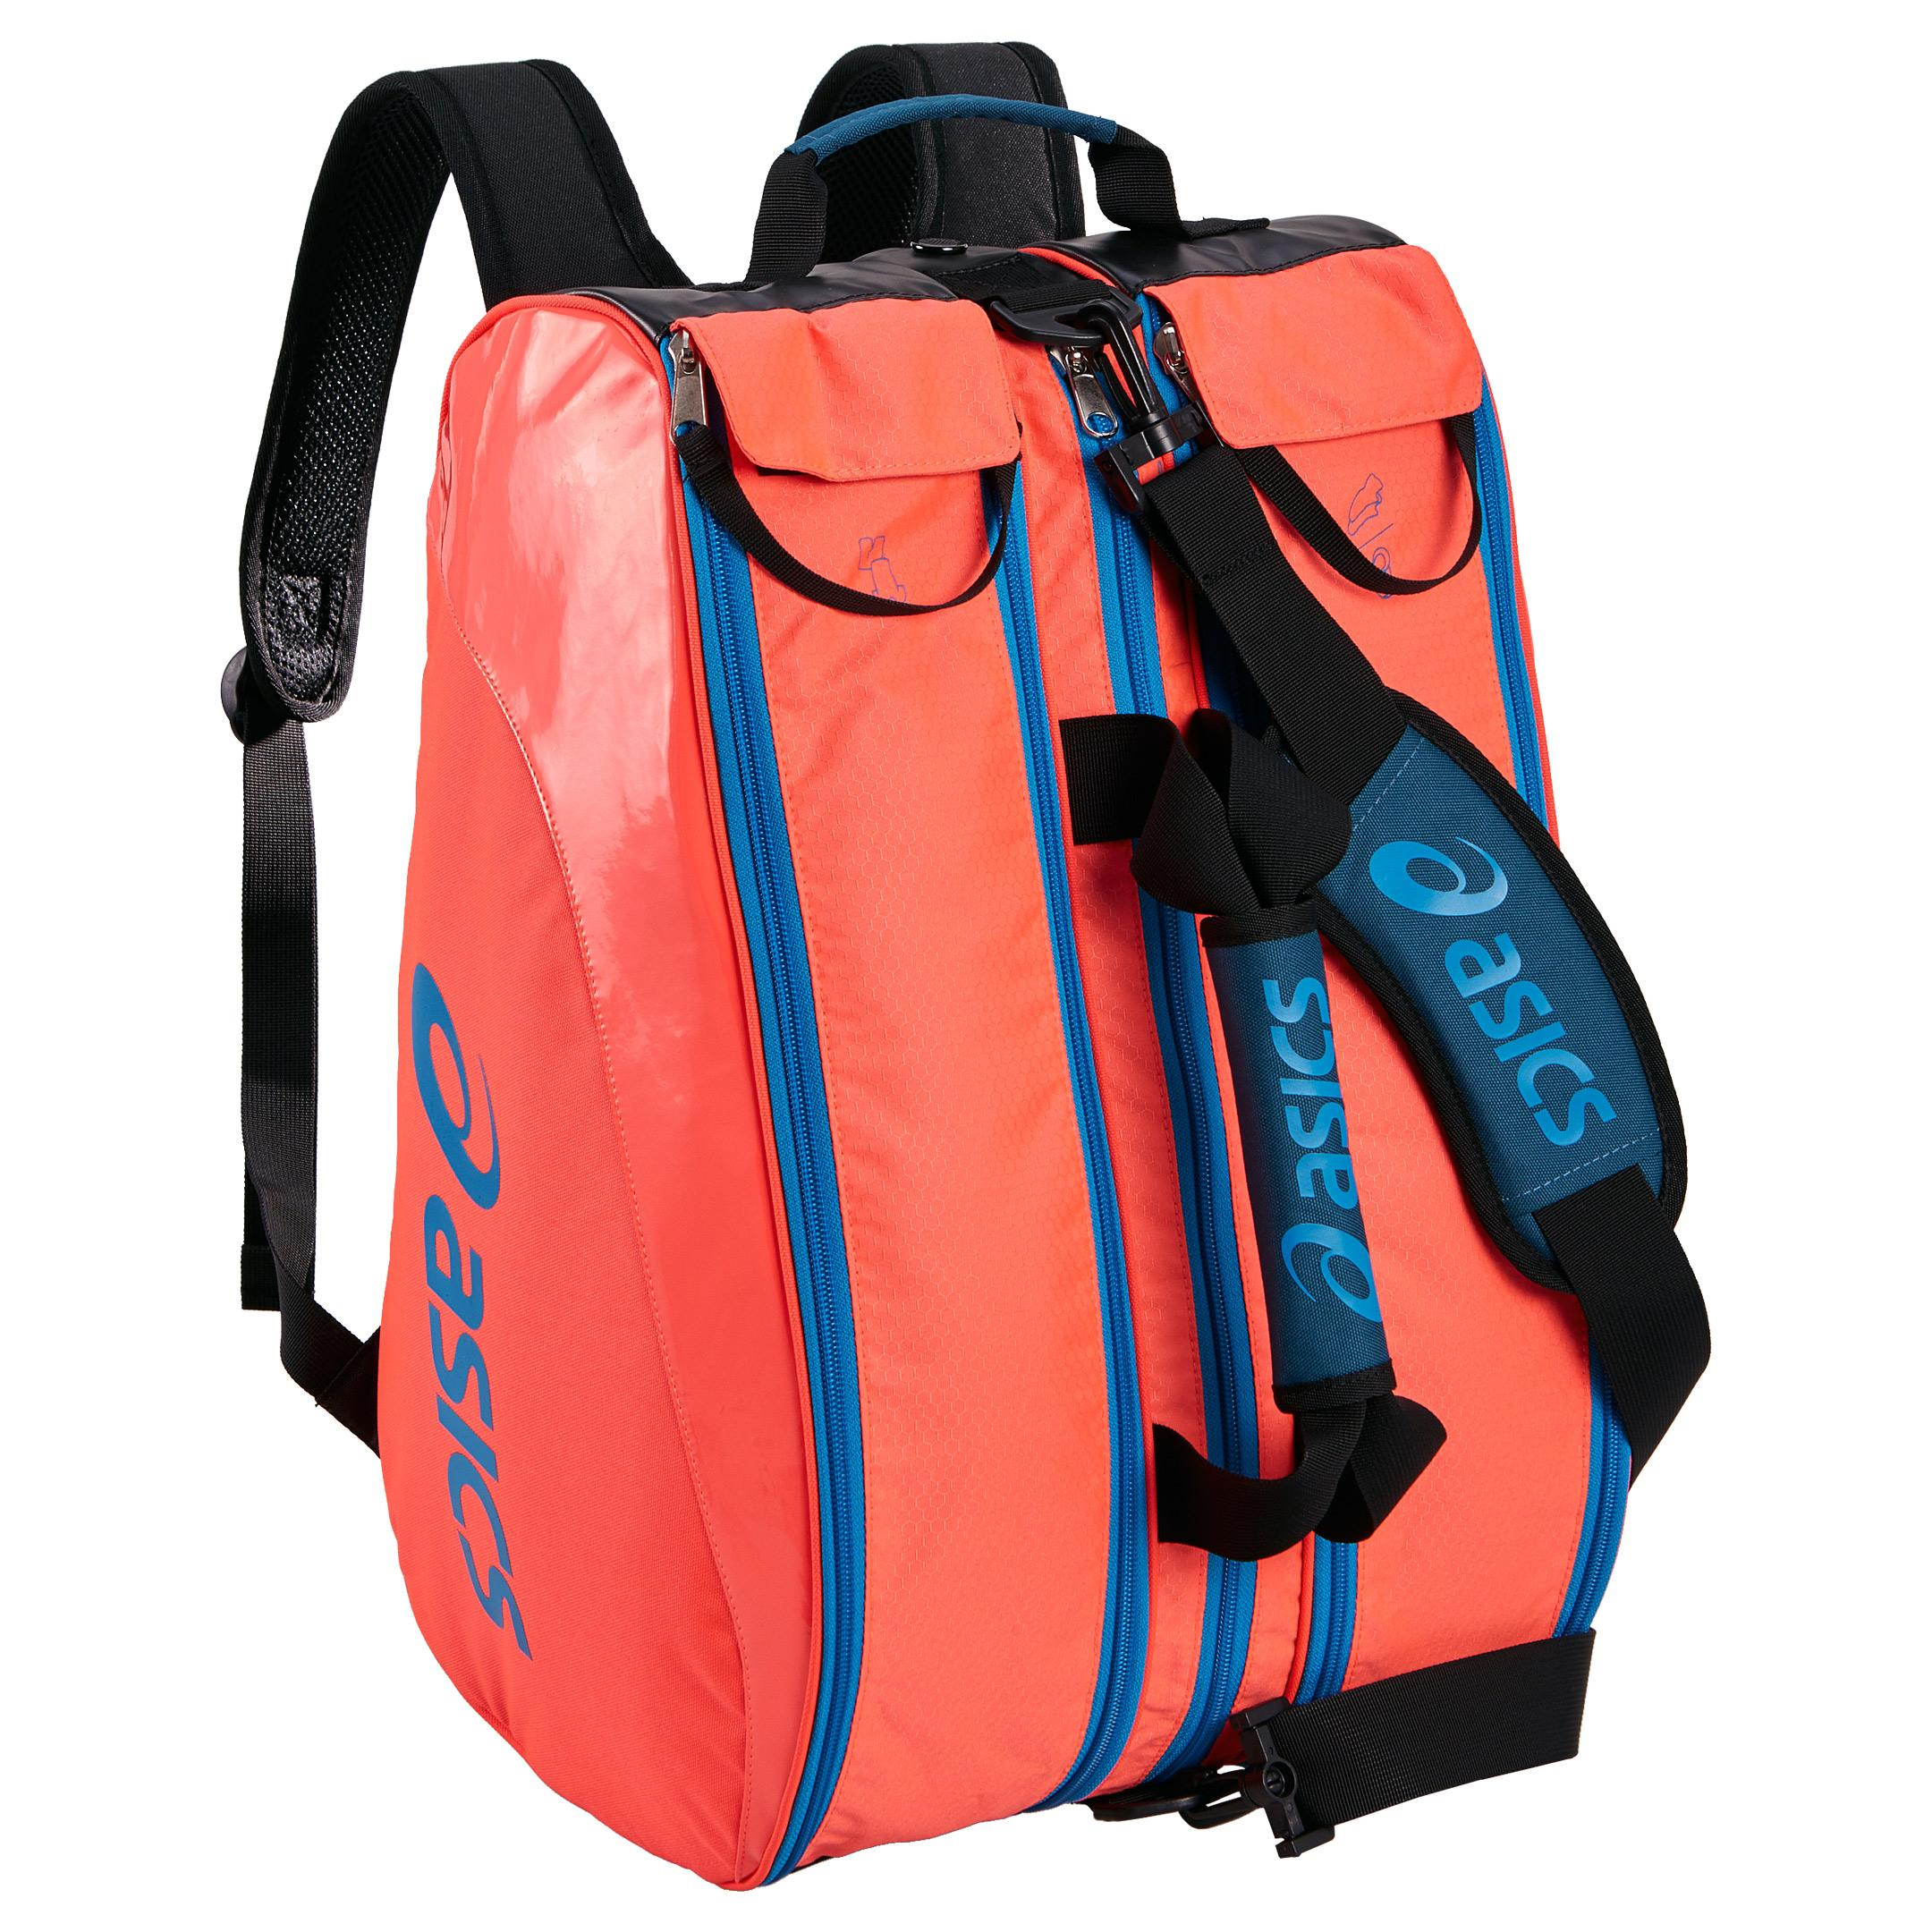 Asics Padel Bag Medium